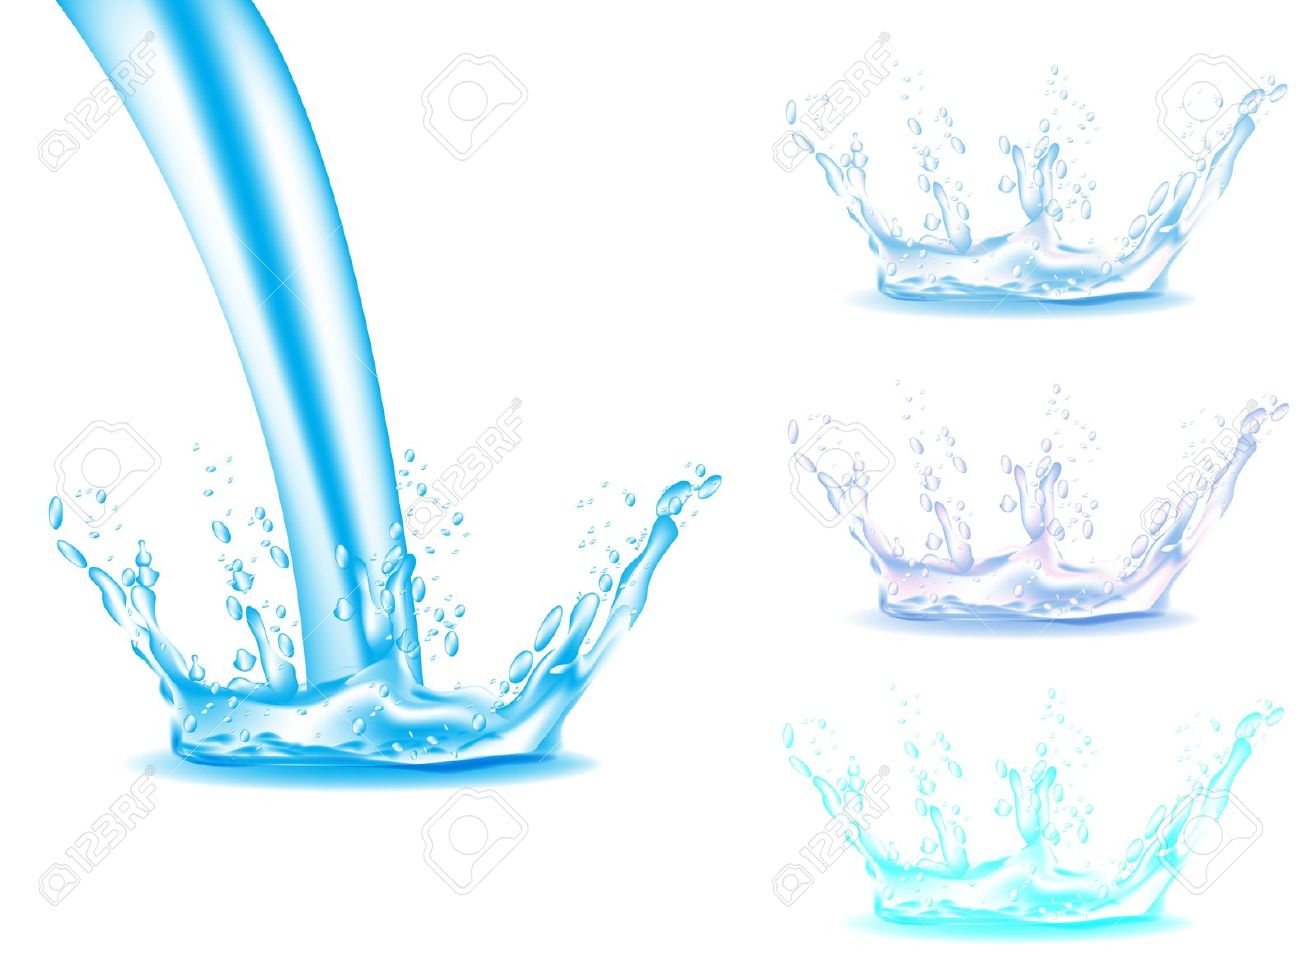 Pouring Water Clipart.